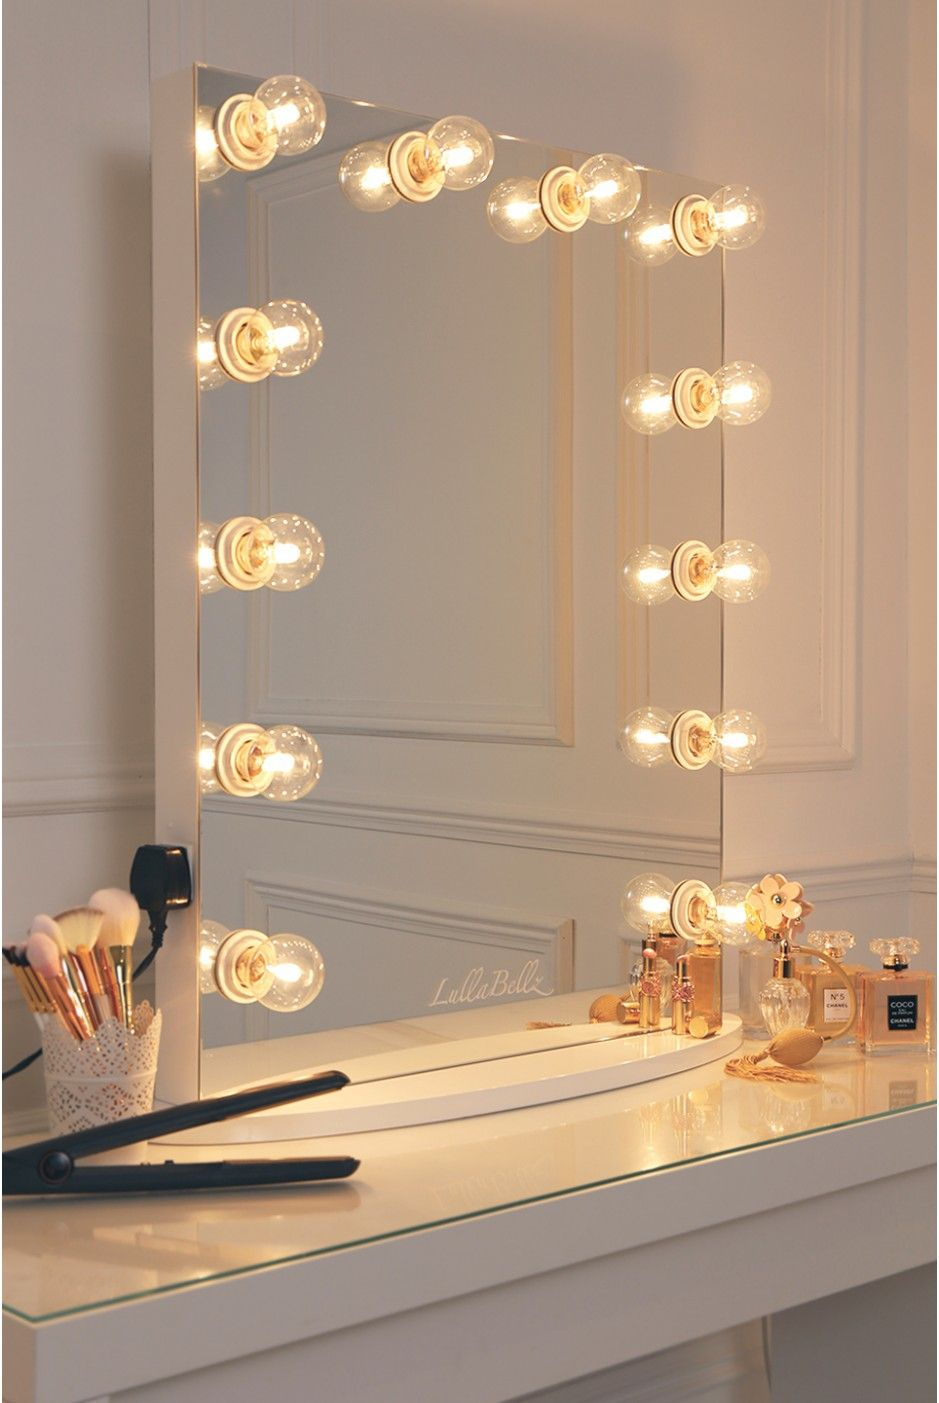 Lullabellz Hollywood Glow Vanity Mirror Clear Bulbs